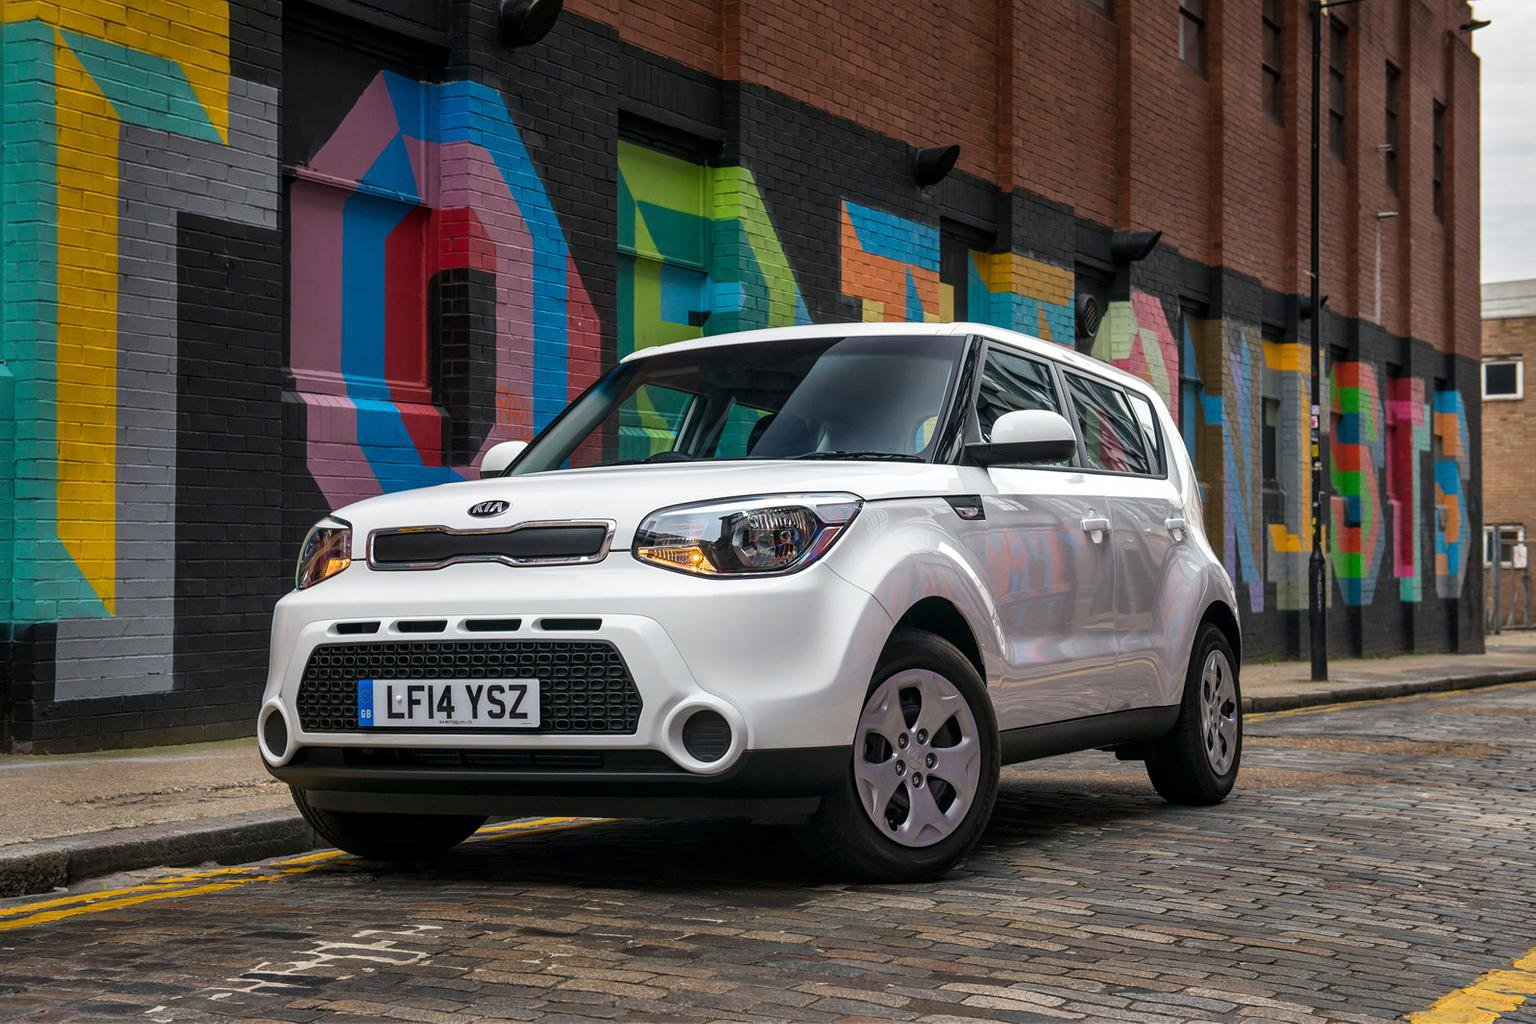 Electric Kia Soul due to cost 25,000